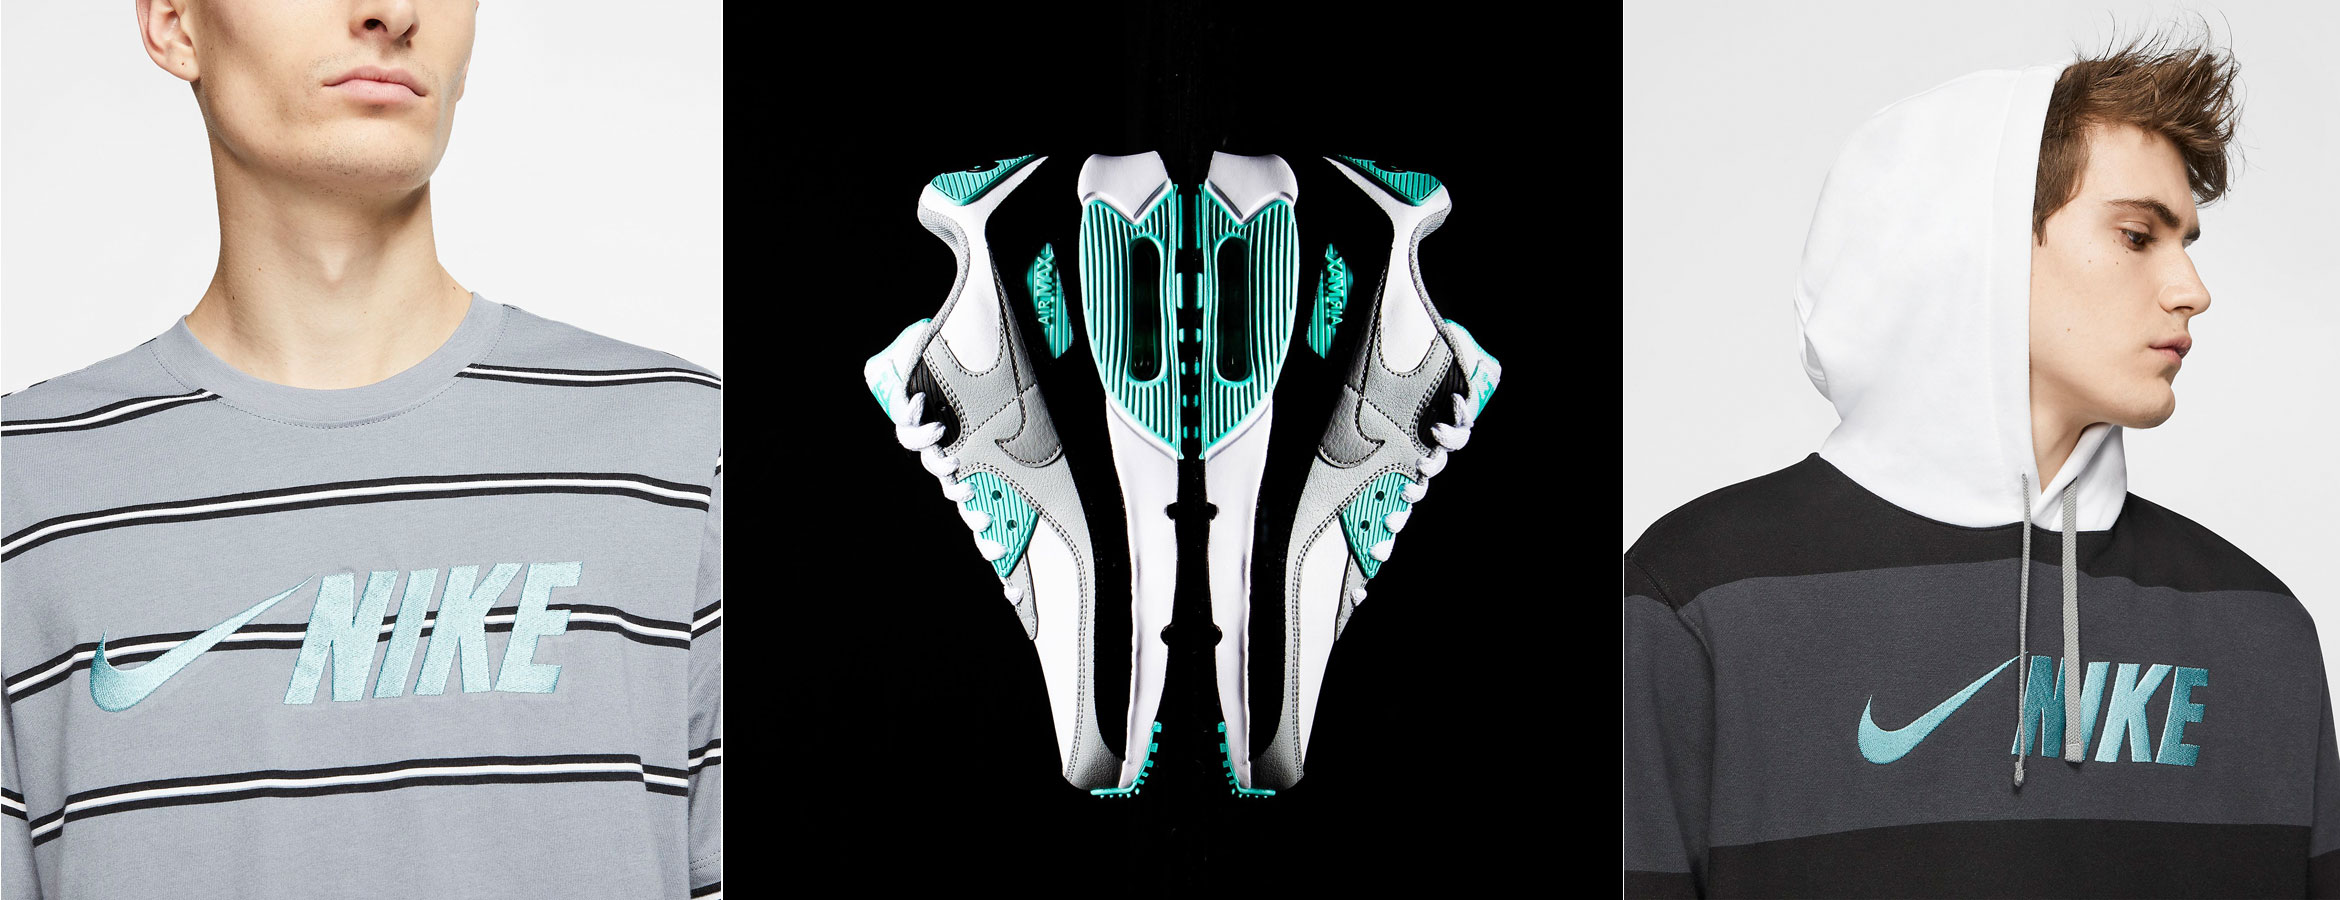 nike-air-max-90-hyper-turquoise-clothing